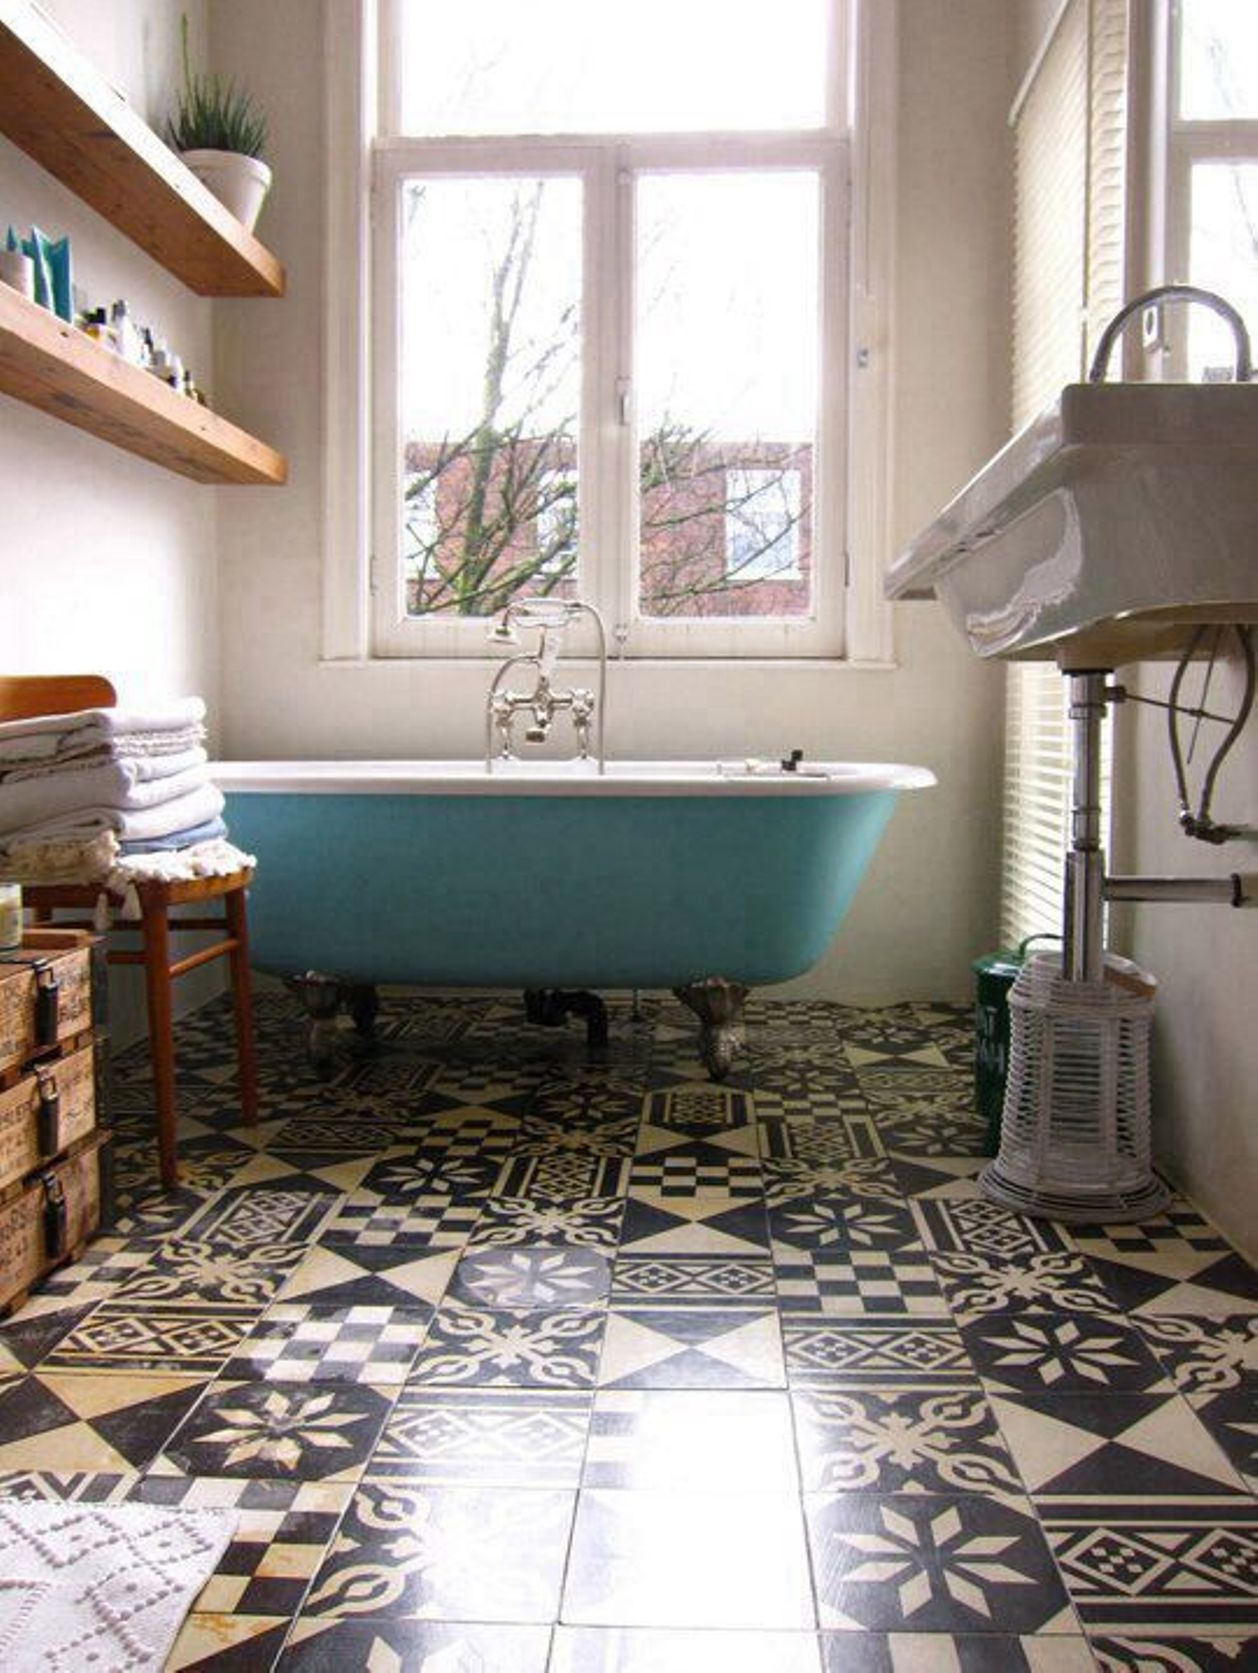 20 great pictures and ideas of vintage bathroom floor tile patterns. Black Bedroom Furniture Sets. Home Design Ideas